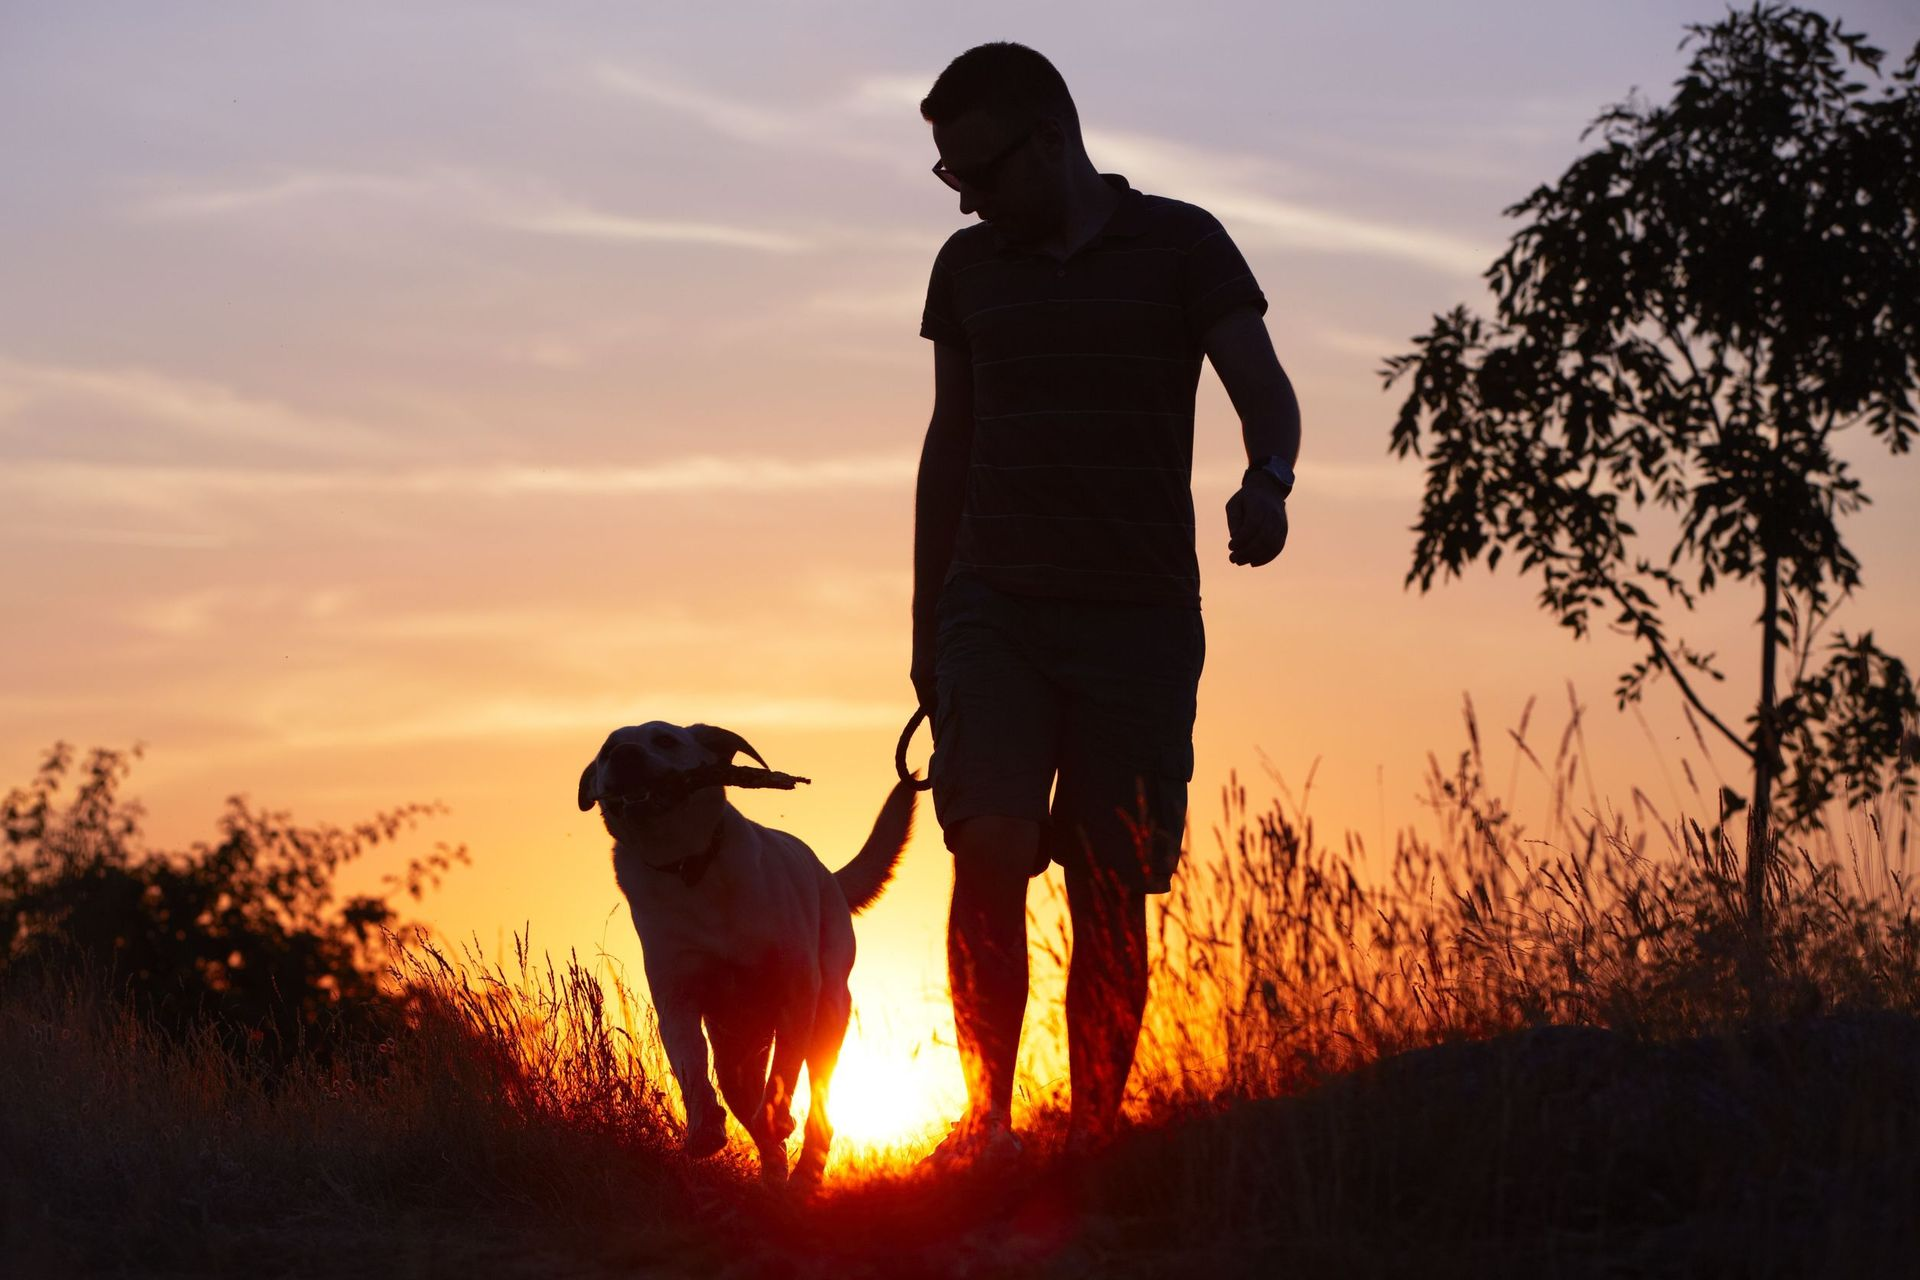 A healthy man was licked by his dog. He was dead within weeks